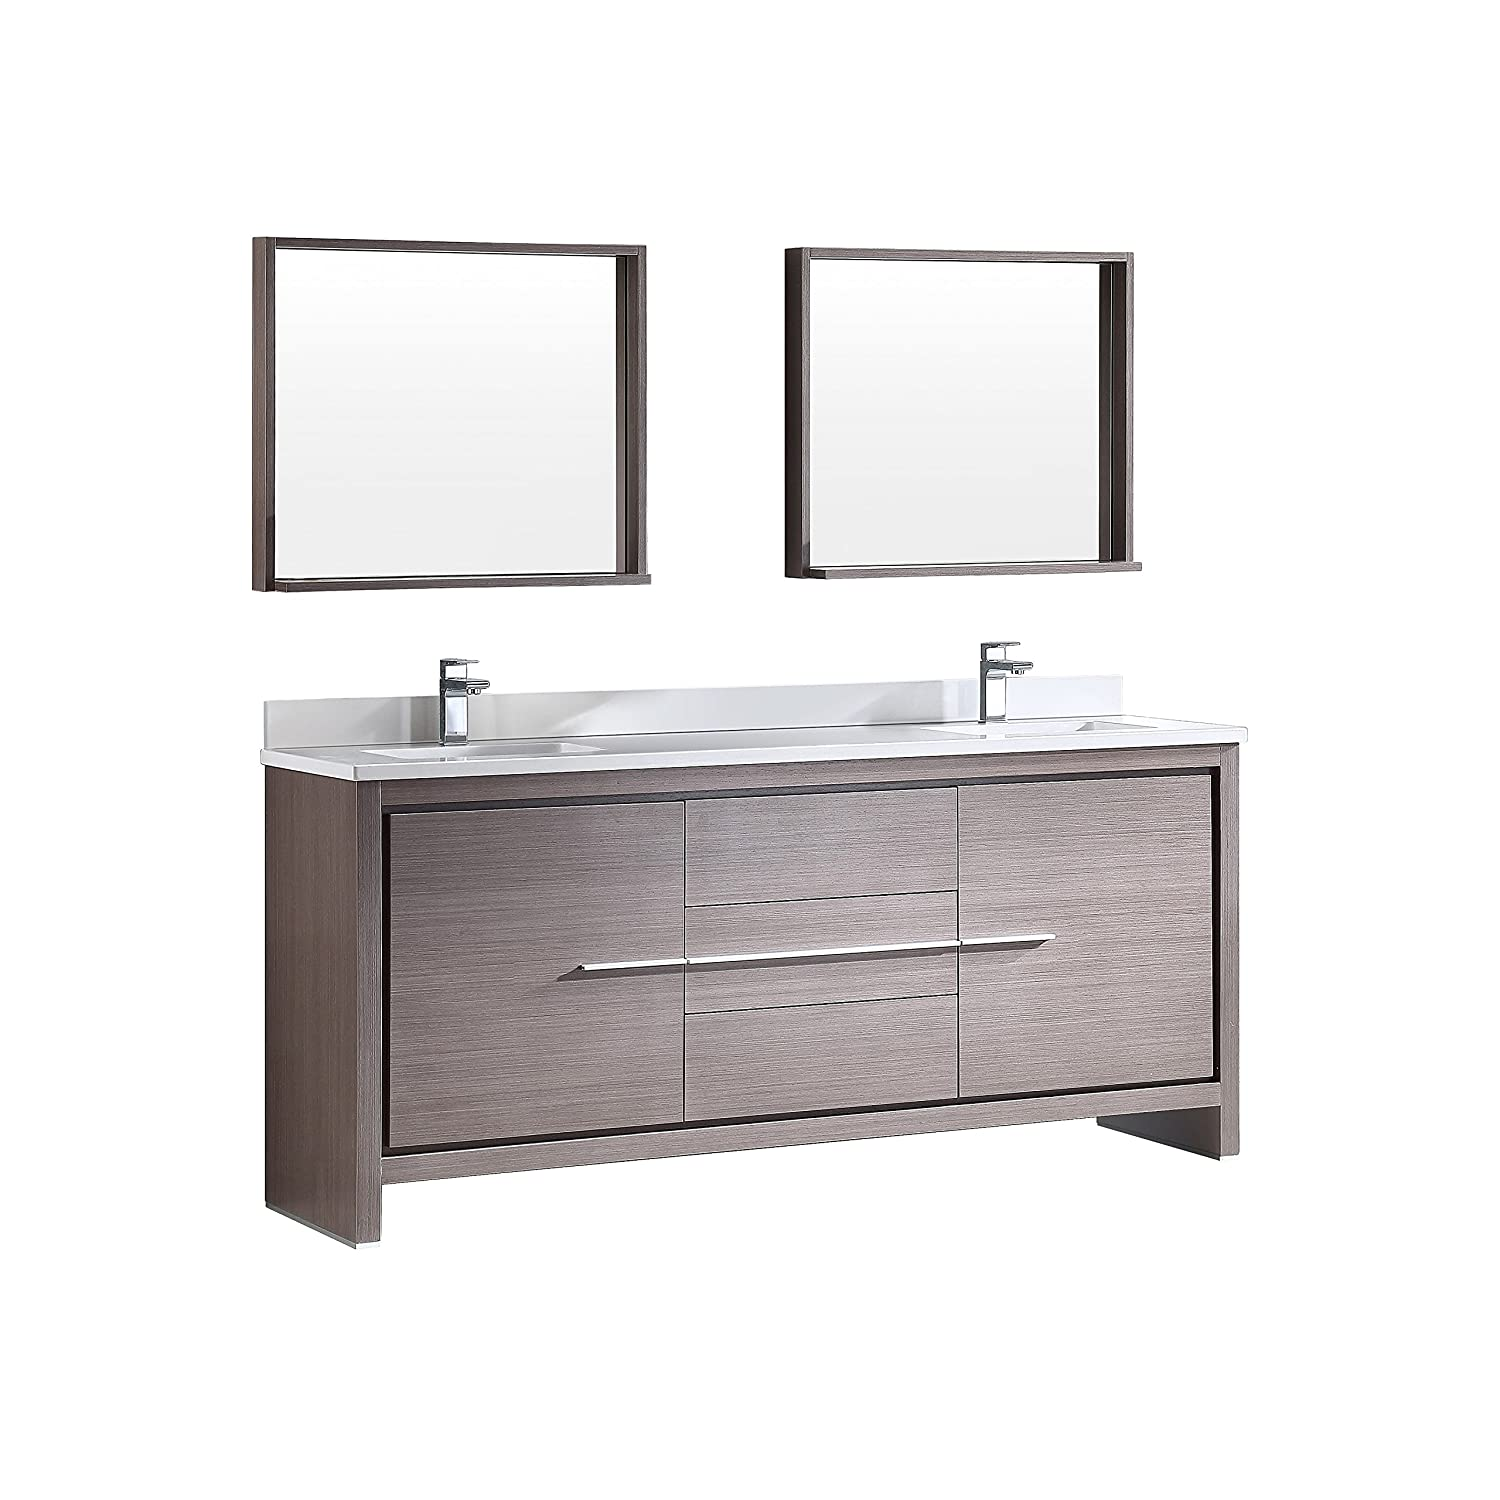 "Fresca Bath FVN8172GO Allier 72"" Modern Double Sink Bathroom"